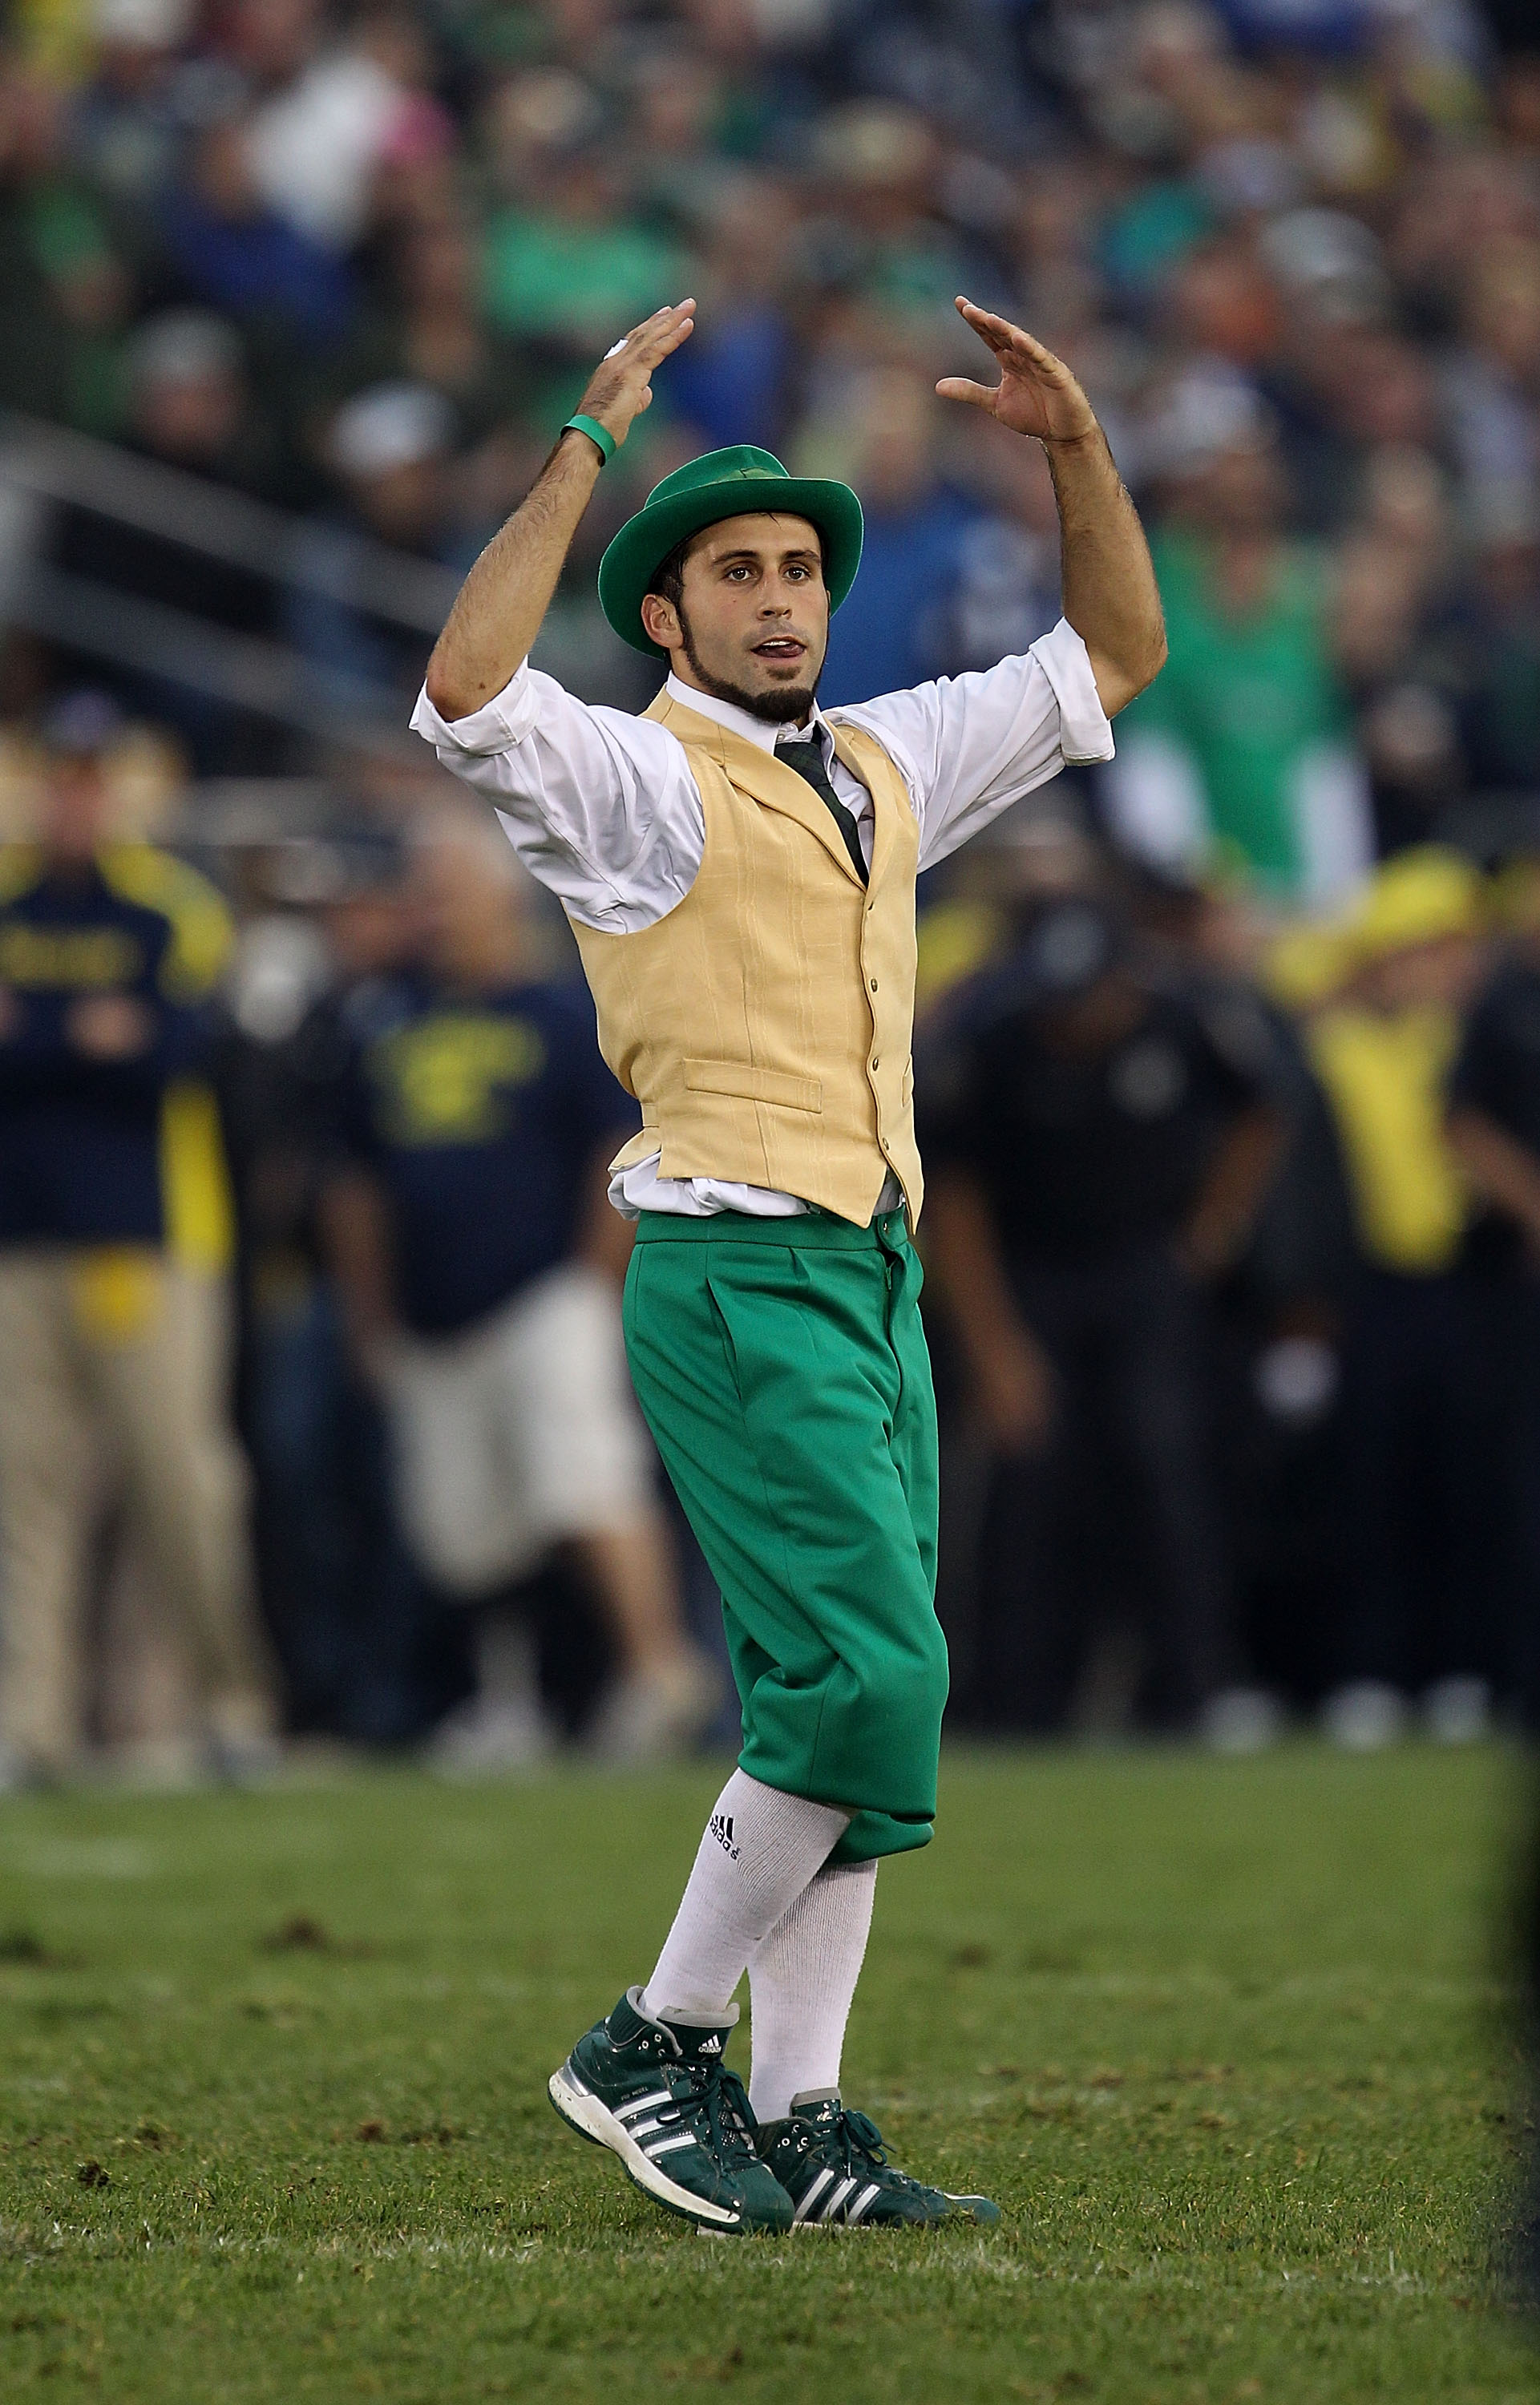 SOUTH BEND, IN - SEPTEMBER 11: The leprechaun mascot for the Notre Dame Fighting Irish performs during a game against the Michigan Wolverines at Notre Dame Stadium on September 11, 2010 in South Bend, Indiana. Michigan defeated Notre Dame 28-24. (Photo by